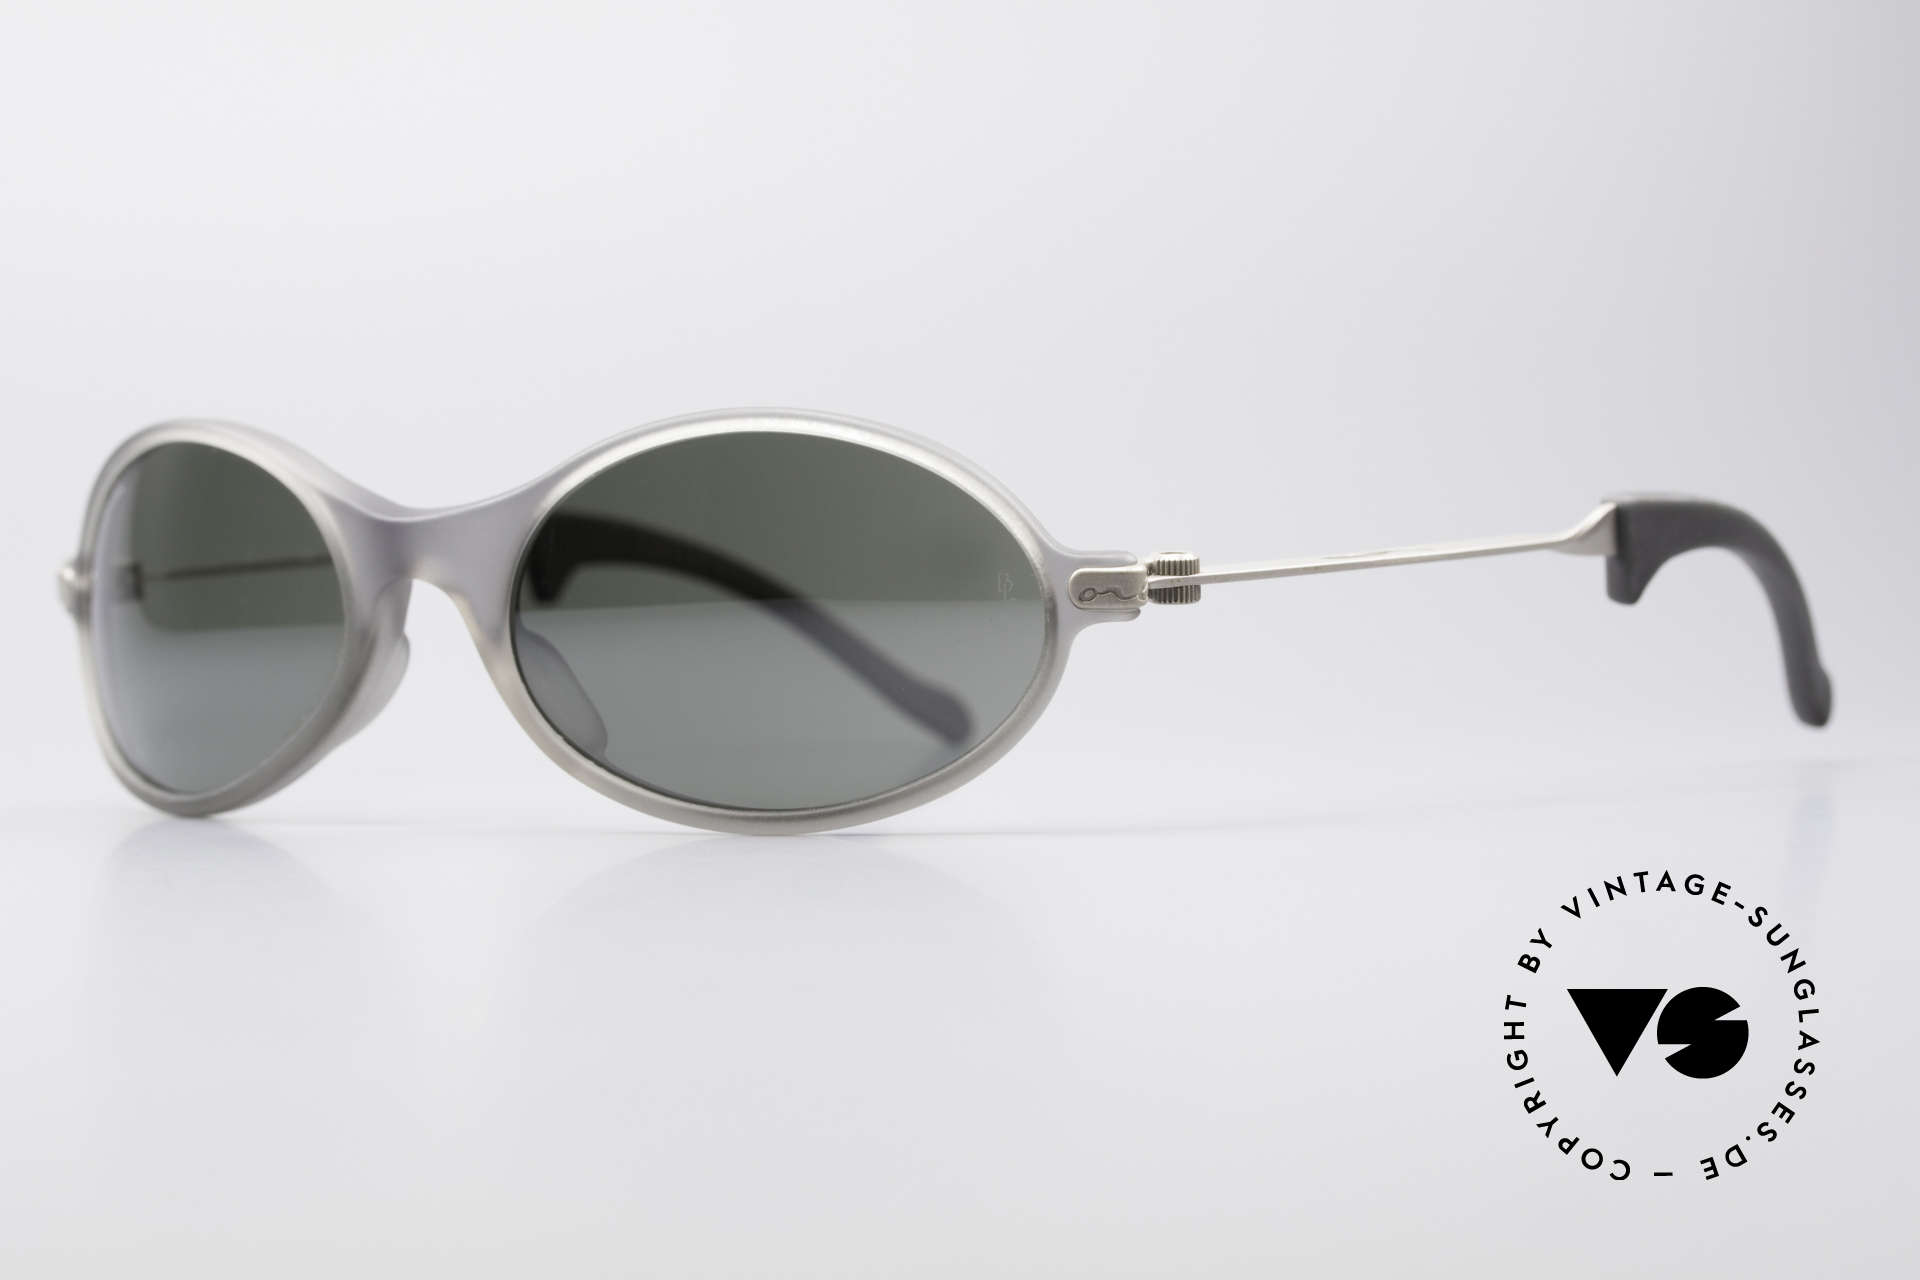 Ray Ban Orbs Oval Combo Silver Mirror B&L USA Shades, one of the last Ray Ban models, which B&L ever made, Made for Men